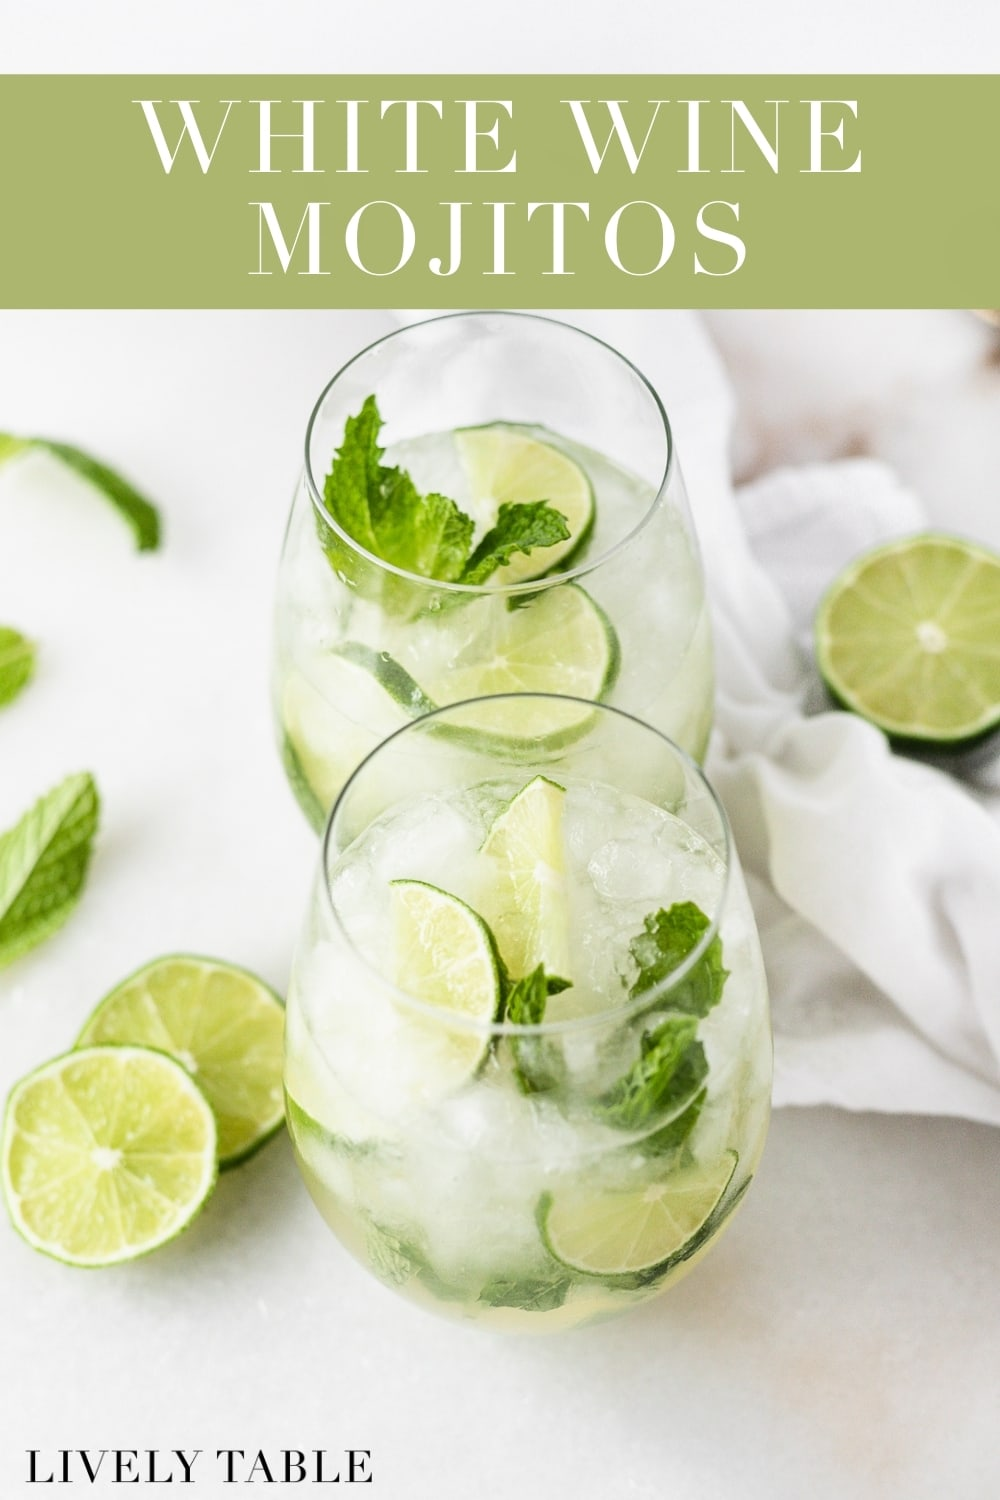 Skinny White Wine Mojitos are light, refreshing, minty, and the perfect cocktail for sipping by the pool this summer! #noaddedsugar #vegan #glutenfree #cocktails #mojito #skinnydrinks #whitewine #recipes #drinks #summer #mint